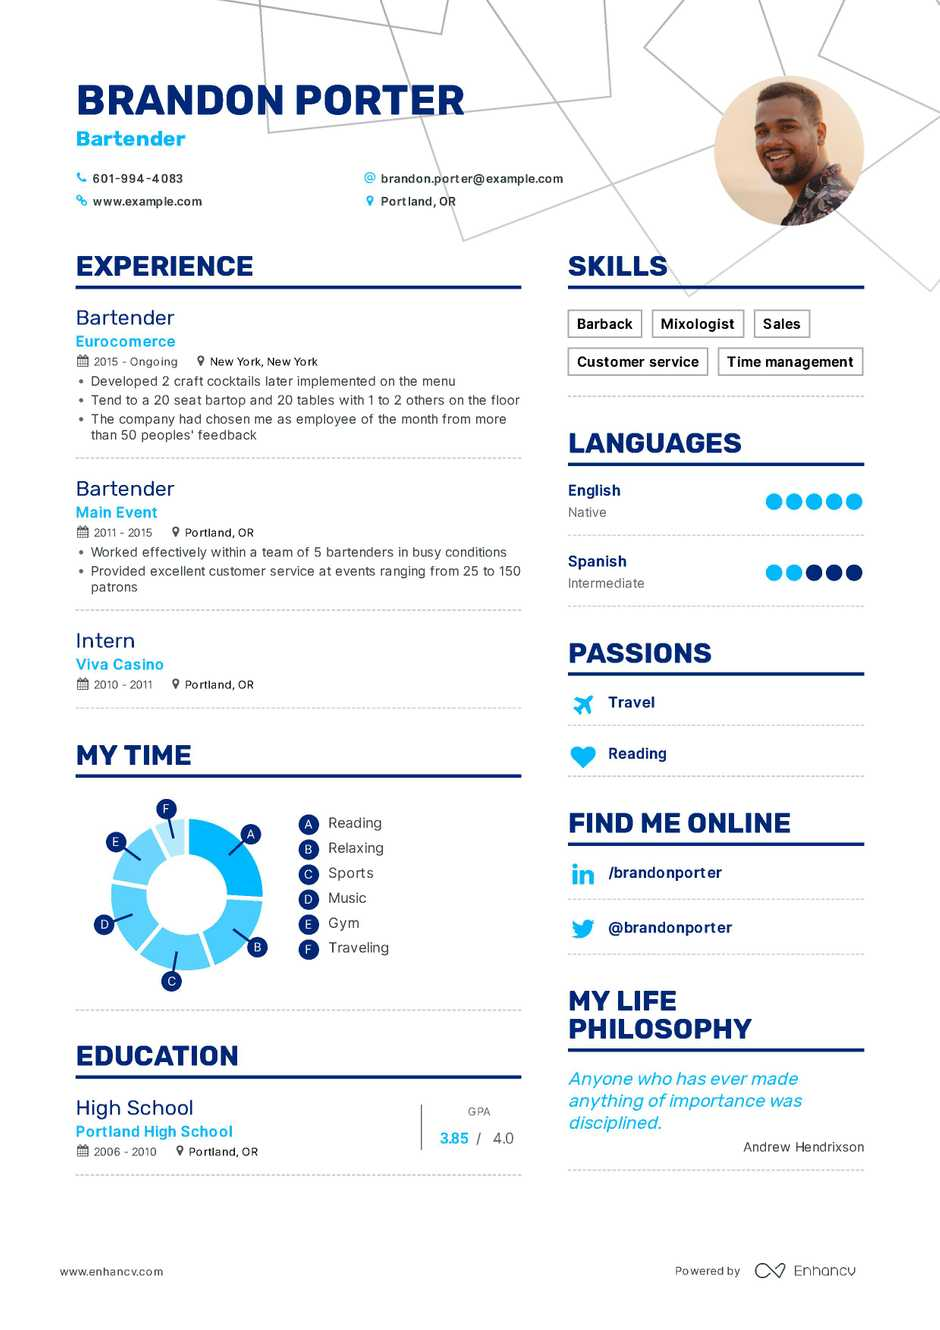 example resume to get a job at a bakery